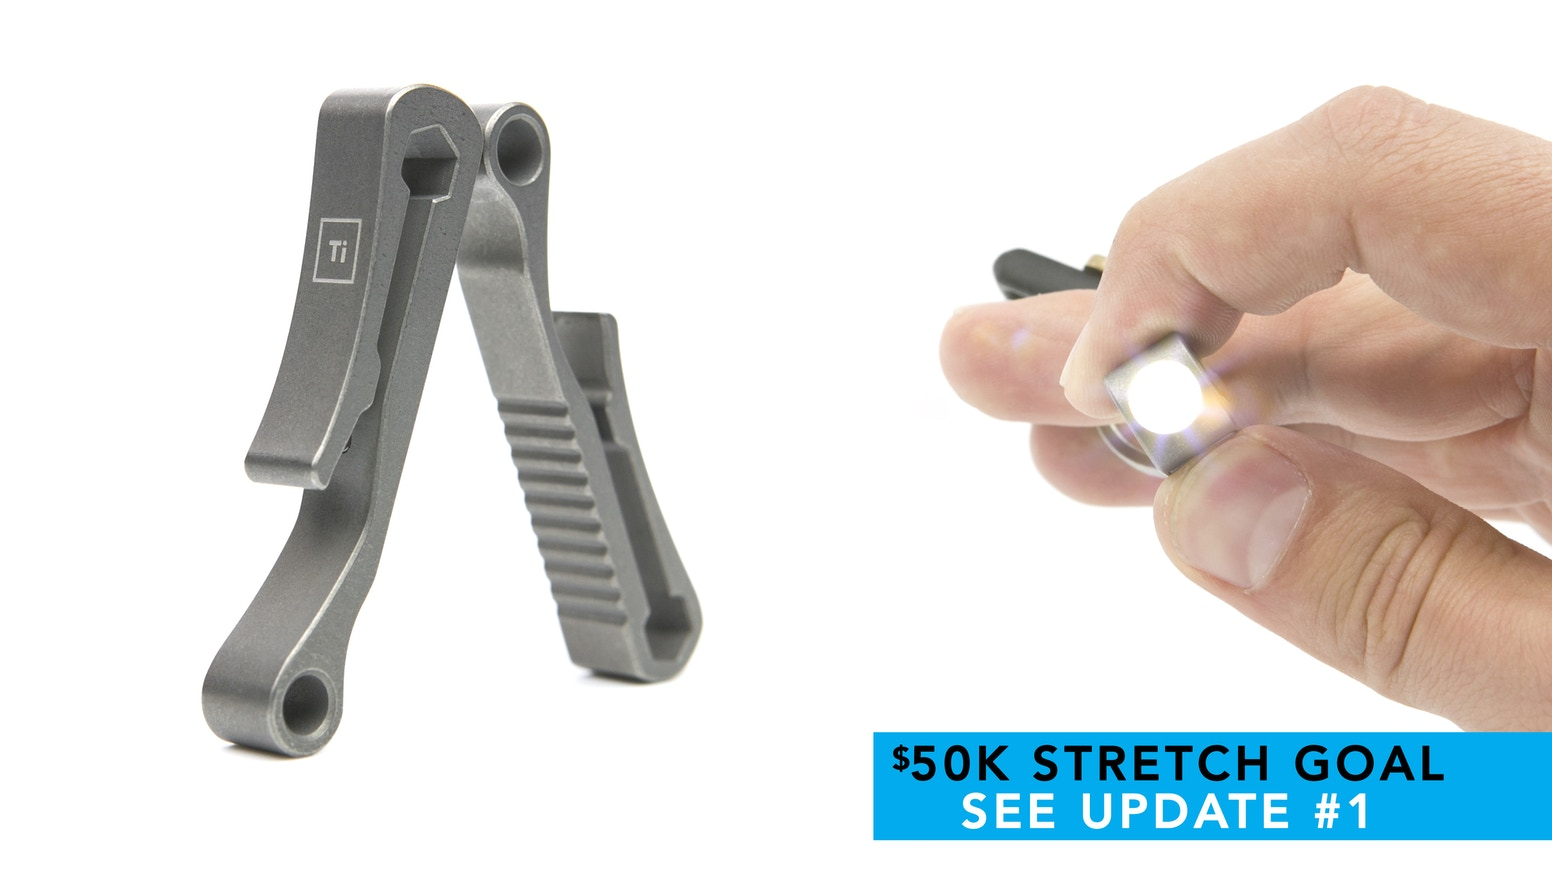 Introducing the world's 1st : Grade 5 Titanium suspension clip multi tool with a LED ( 2 versions ) + Free world wide shipping!